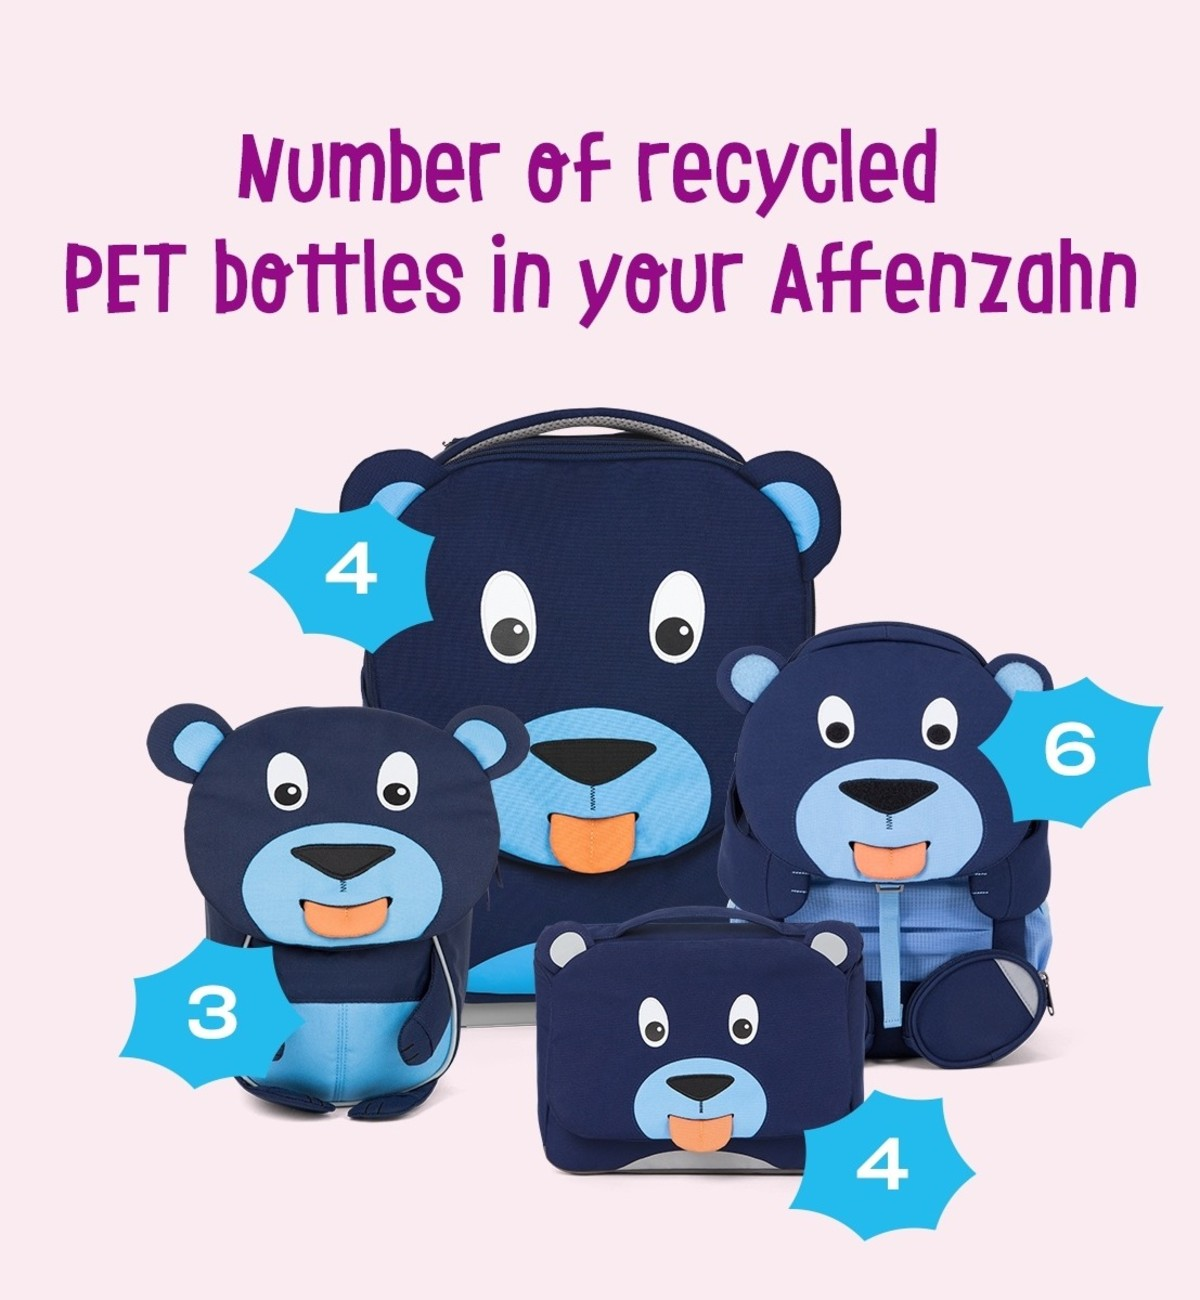 affenzahn-PET-Bottles 1200x1300_EN